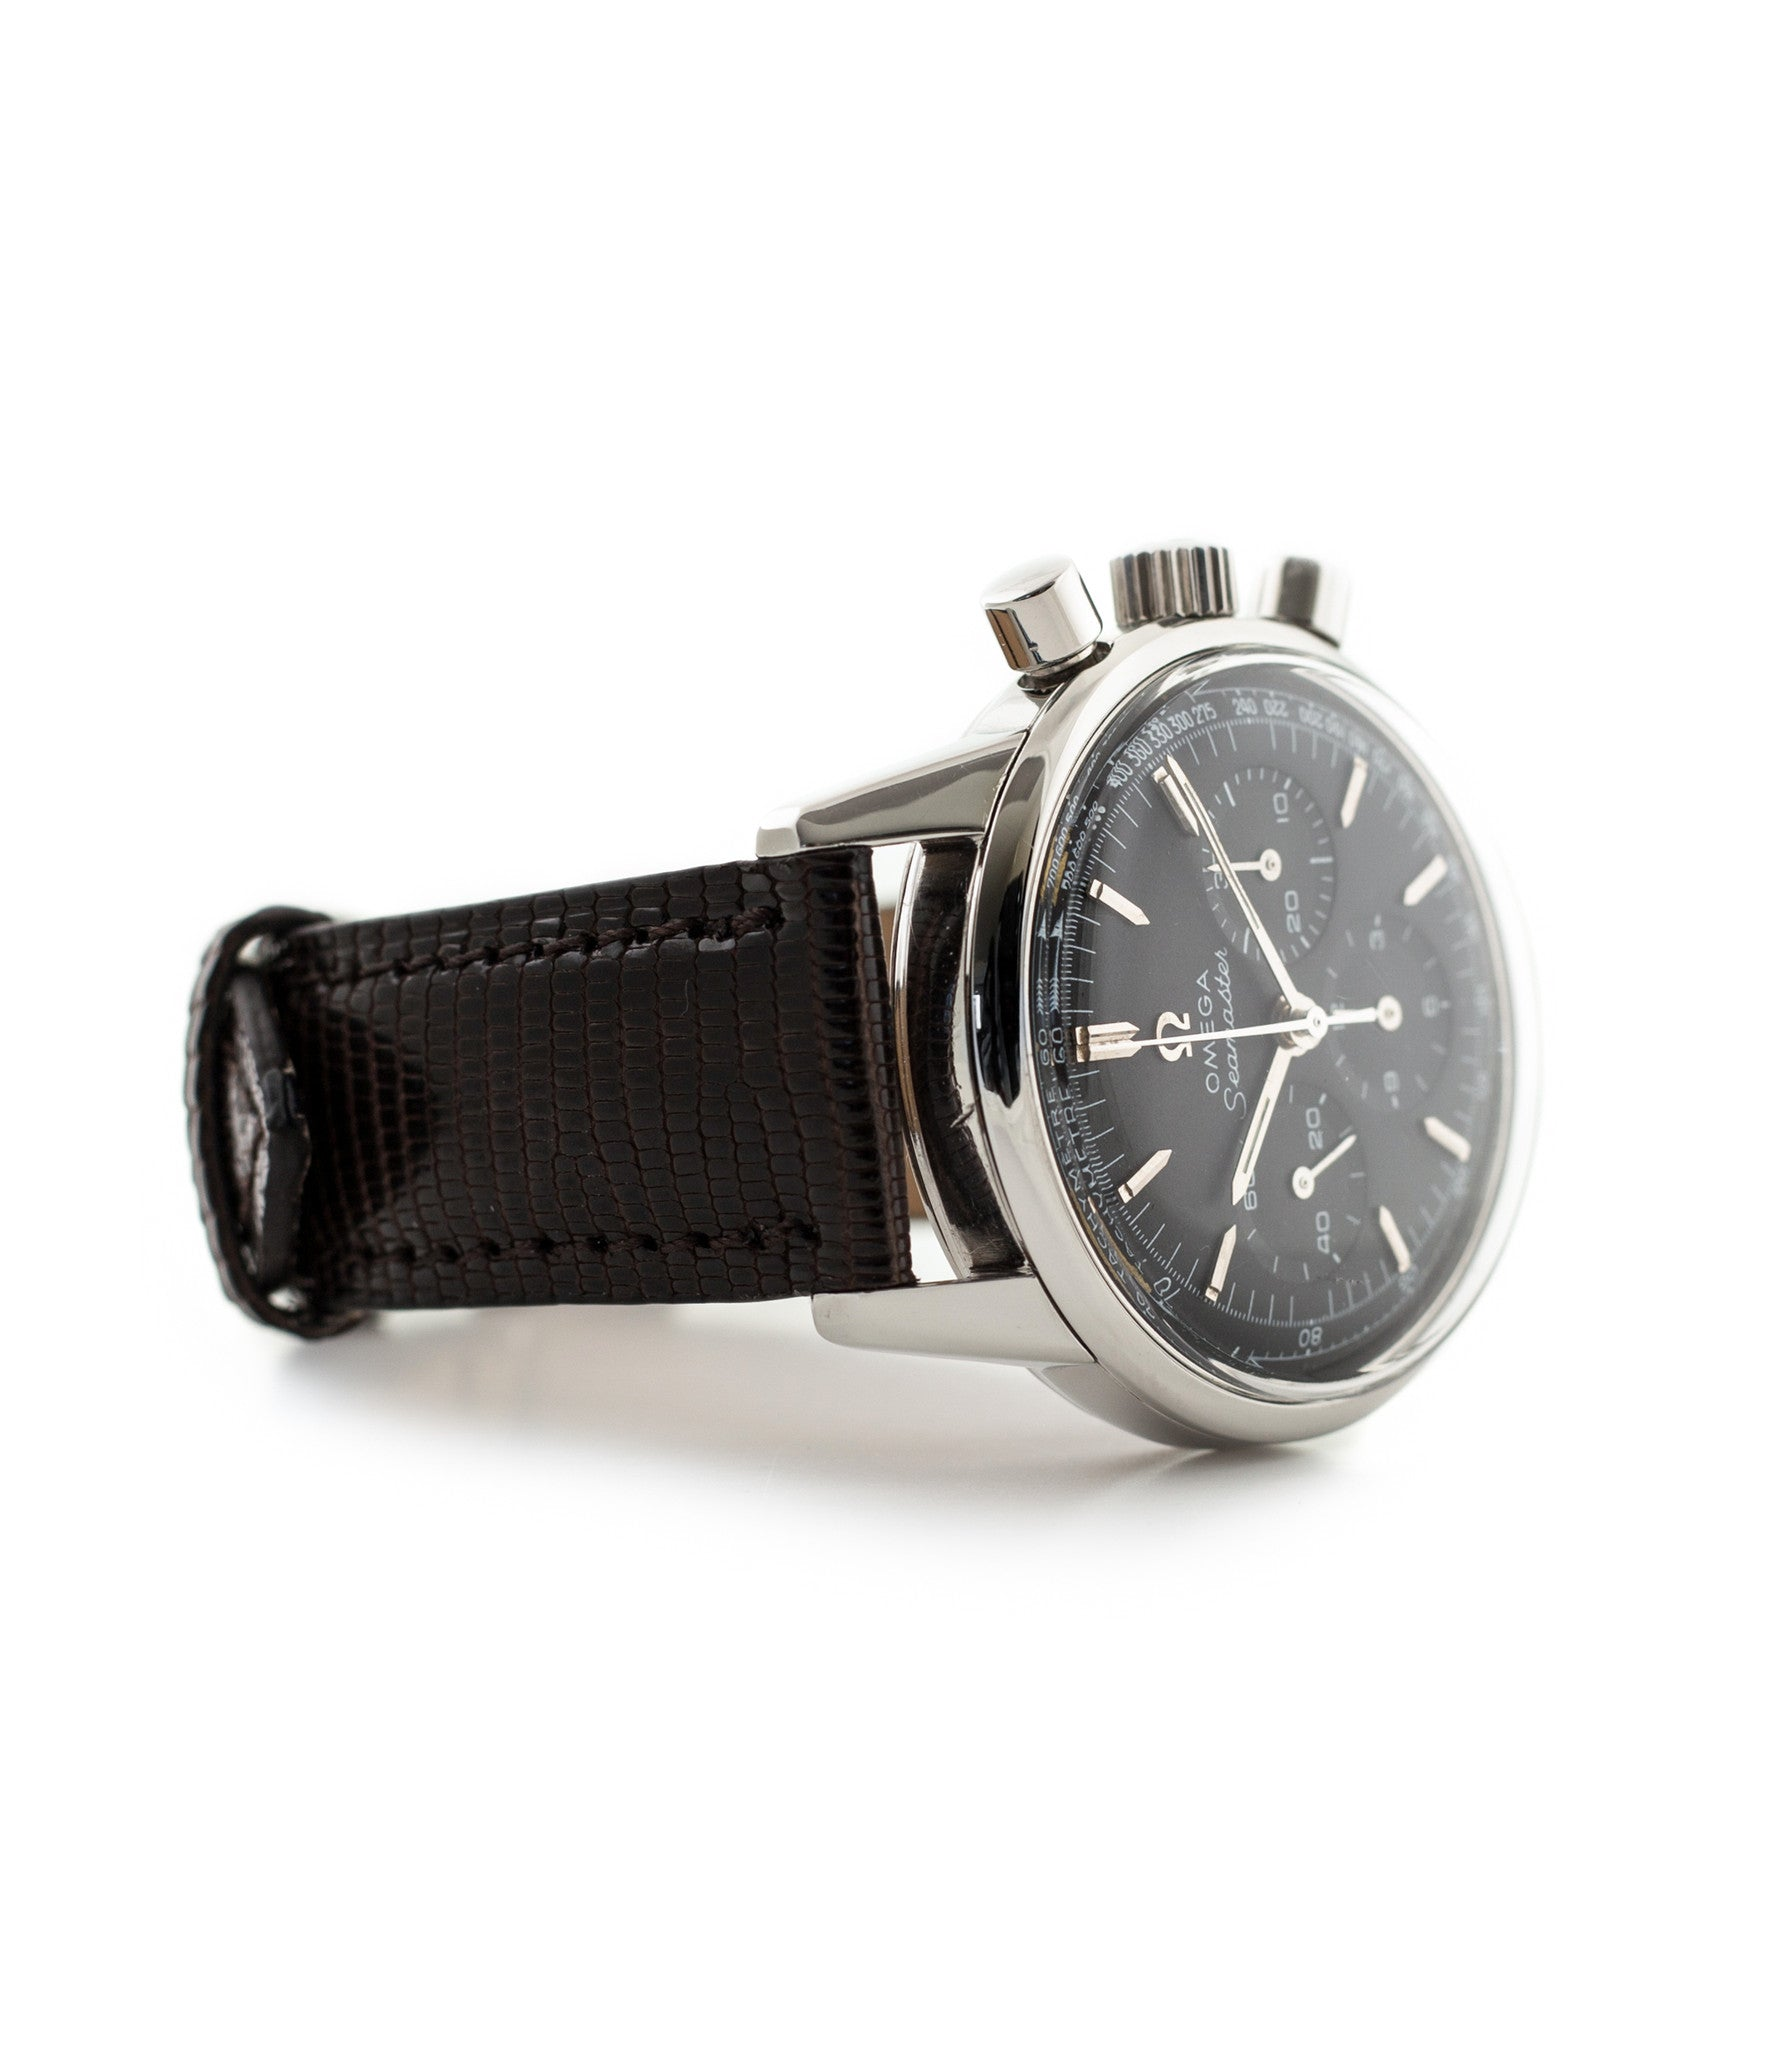 buy Omega Seamaster Chronograph 105.001 Cal. 321 rare black dial vintage steel watch for sale online WATCH XCHANGE London